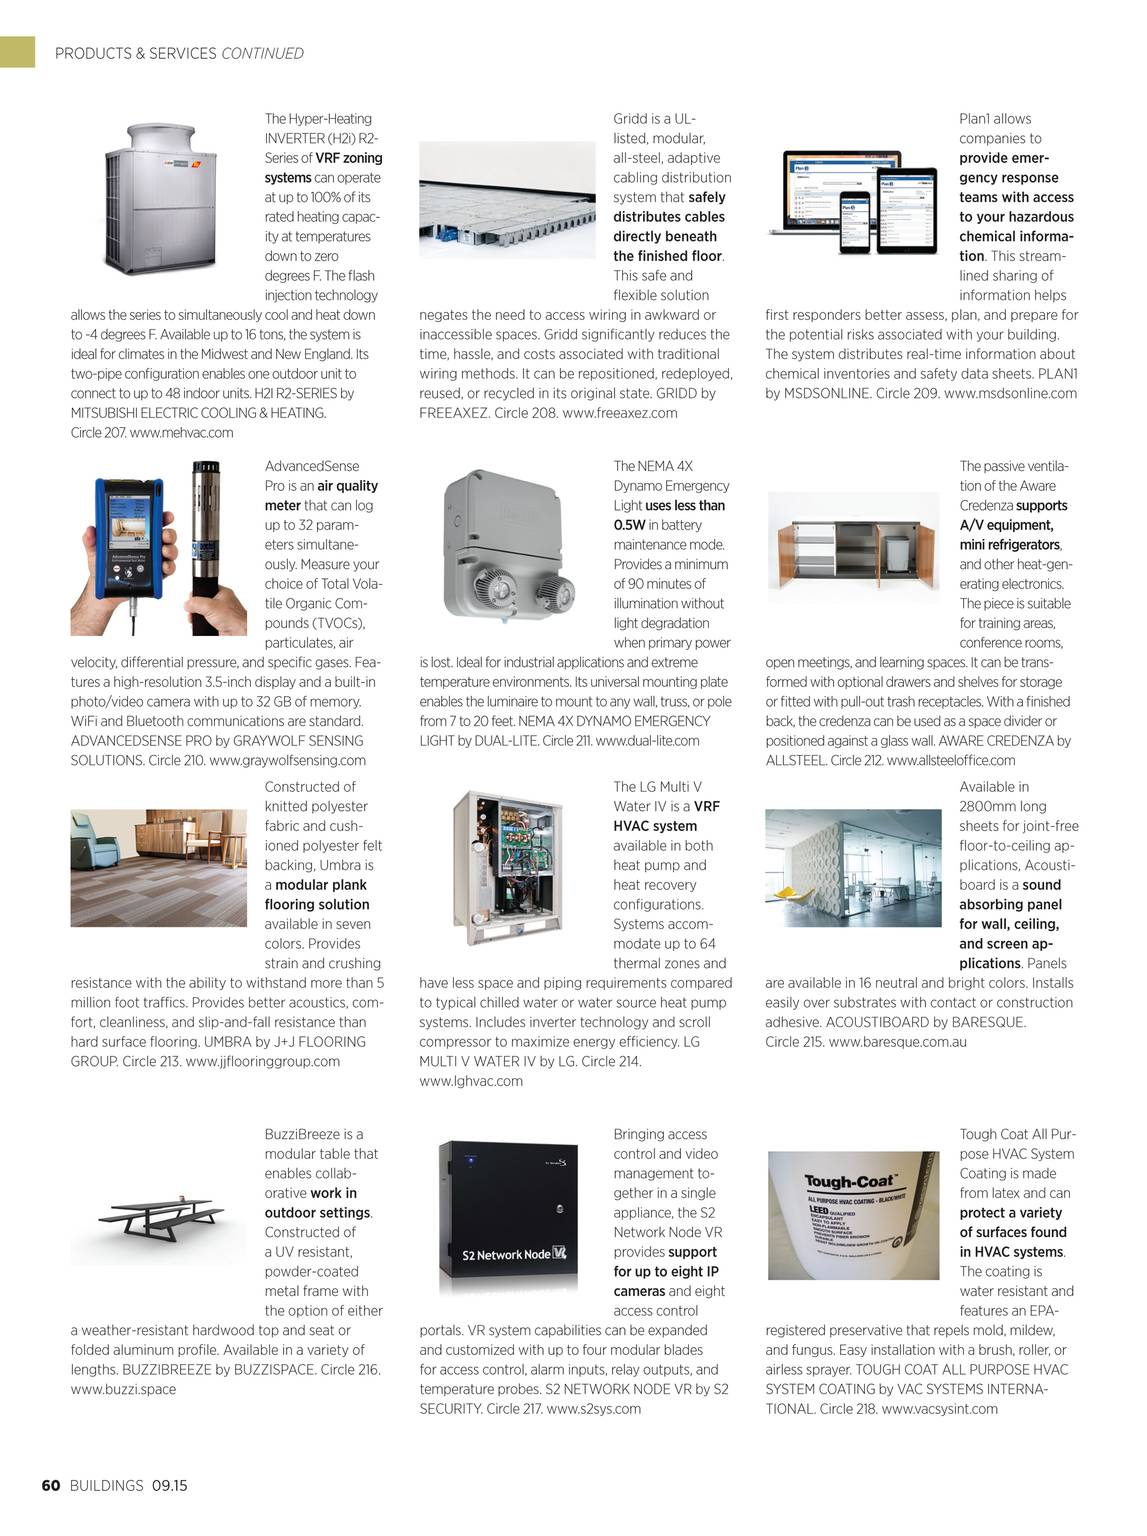 Buildings Magazine - September 2015 - page 59